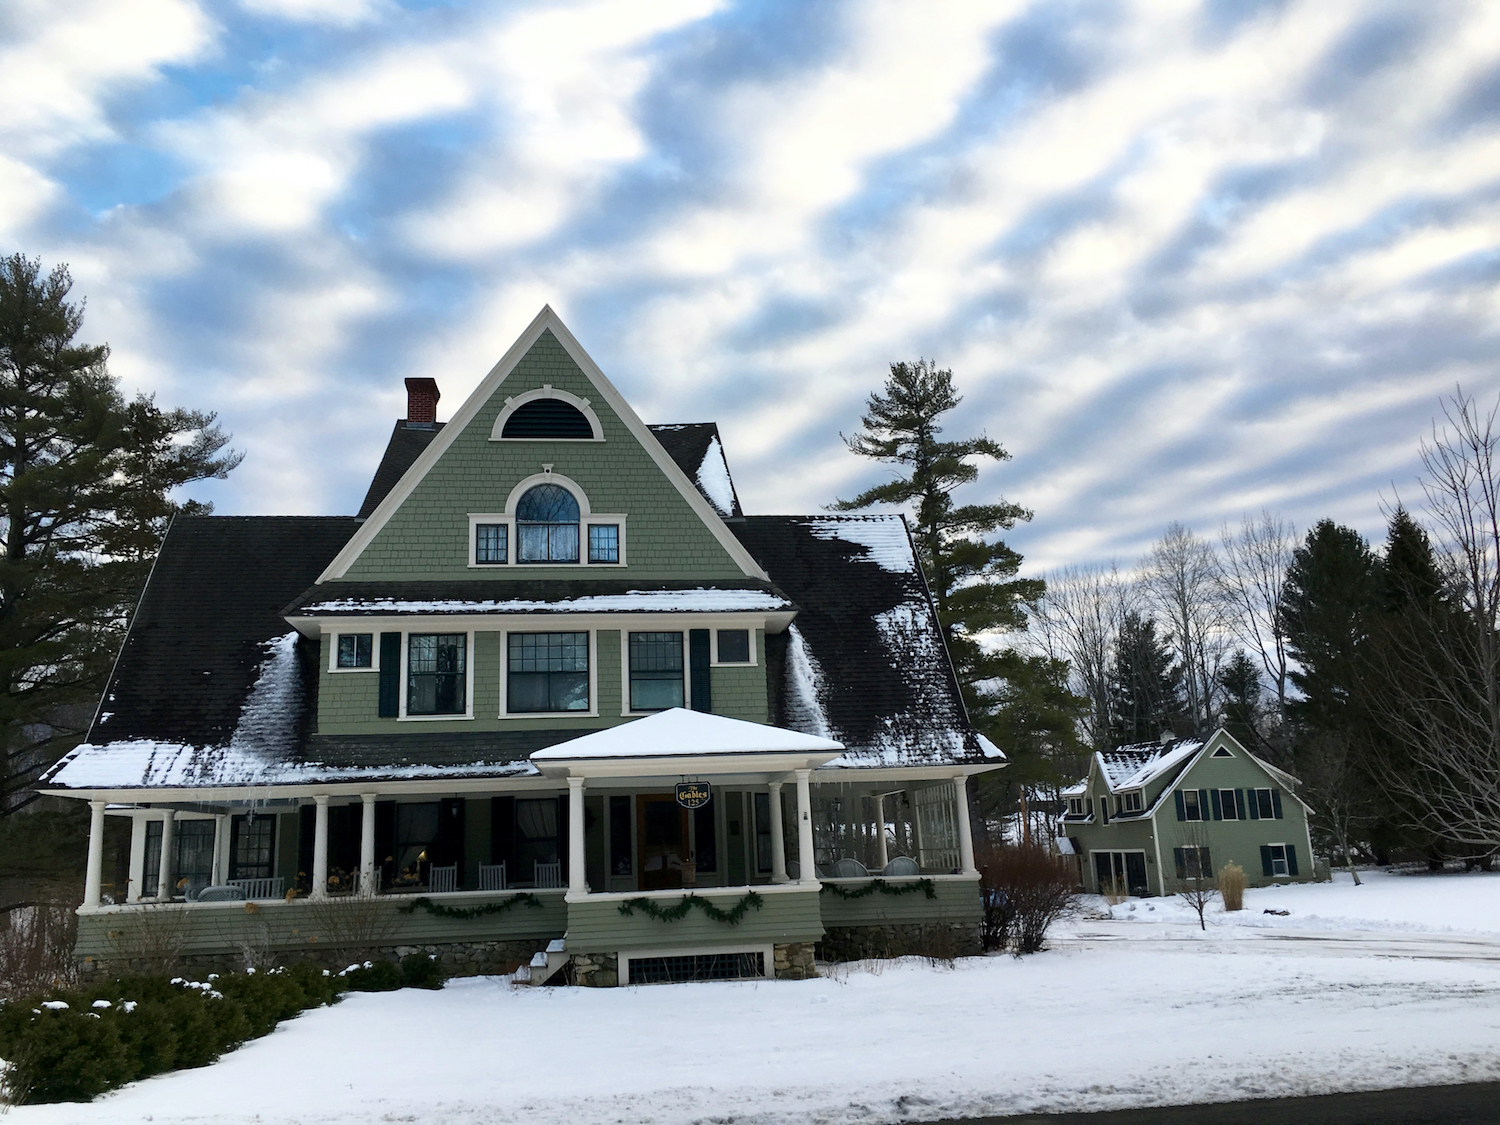 Taconic Mansion & Carriage House Winter.jpg